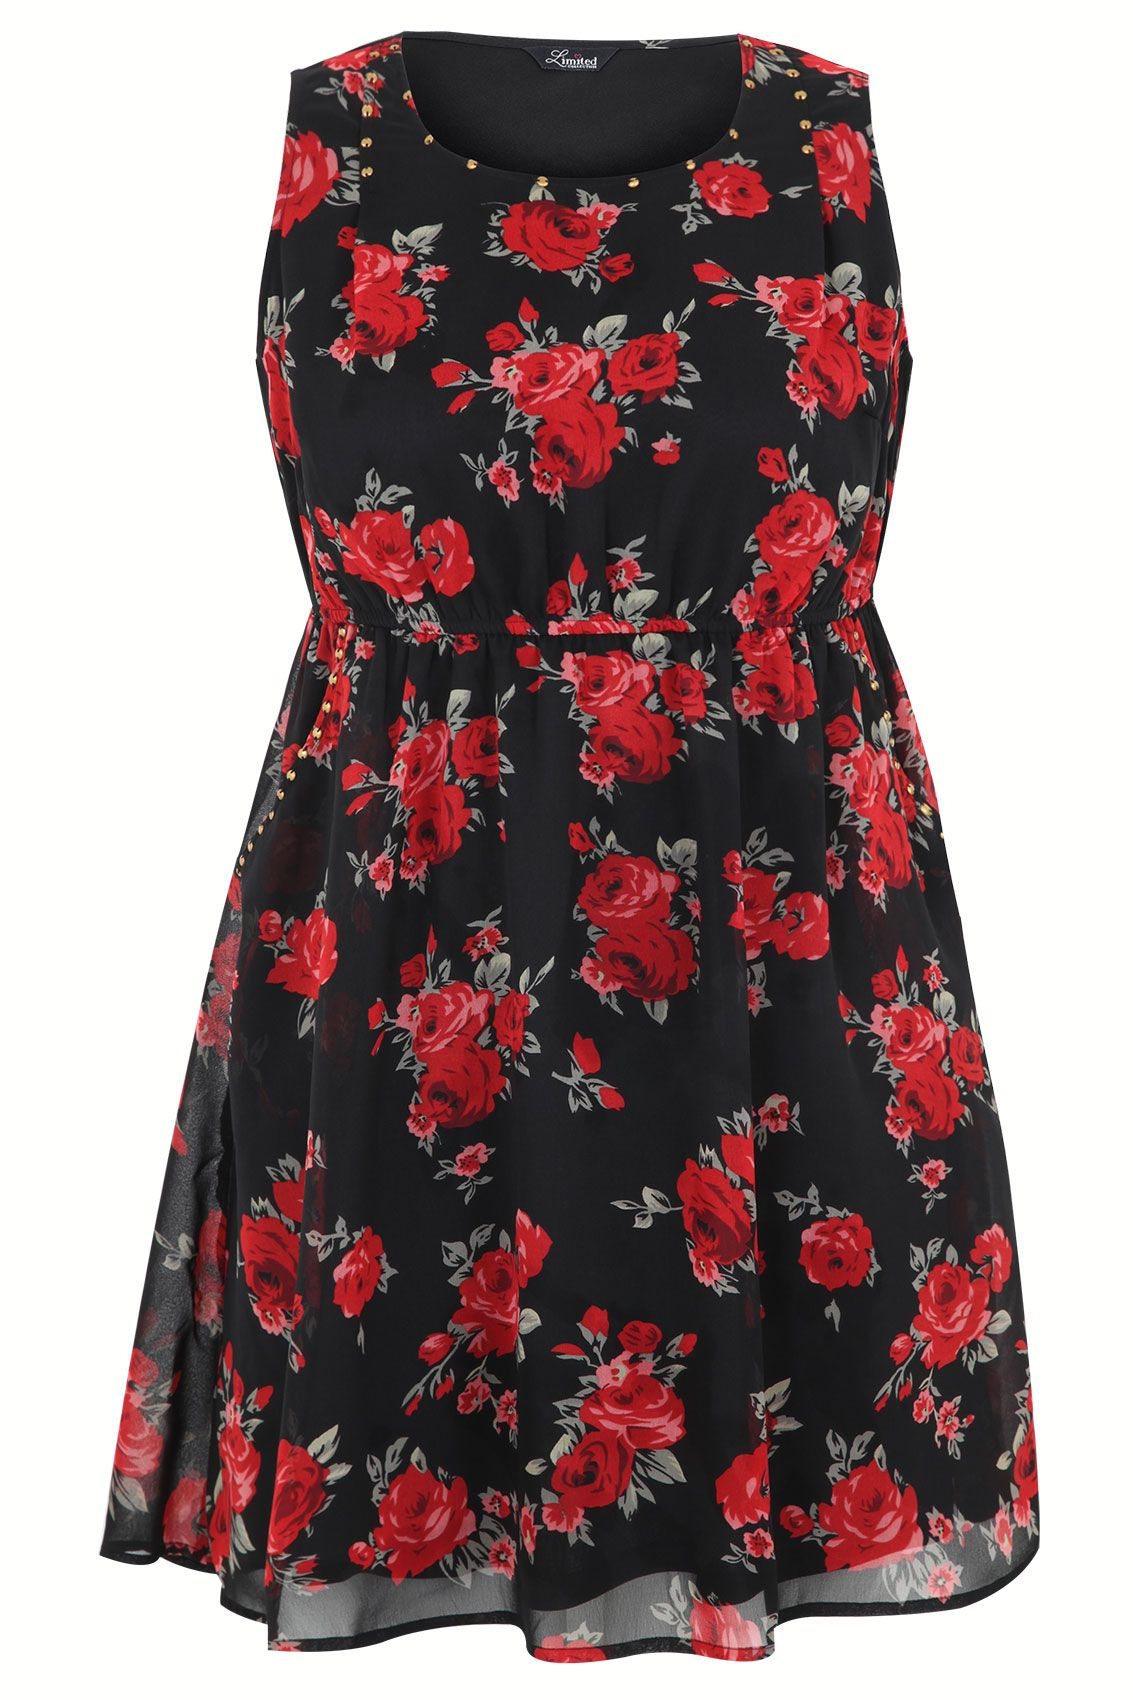 00cae3b736da1 Black And Red Rose Print Skater Dress With Stud Detail plus size 14 ...